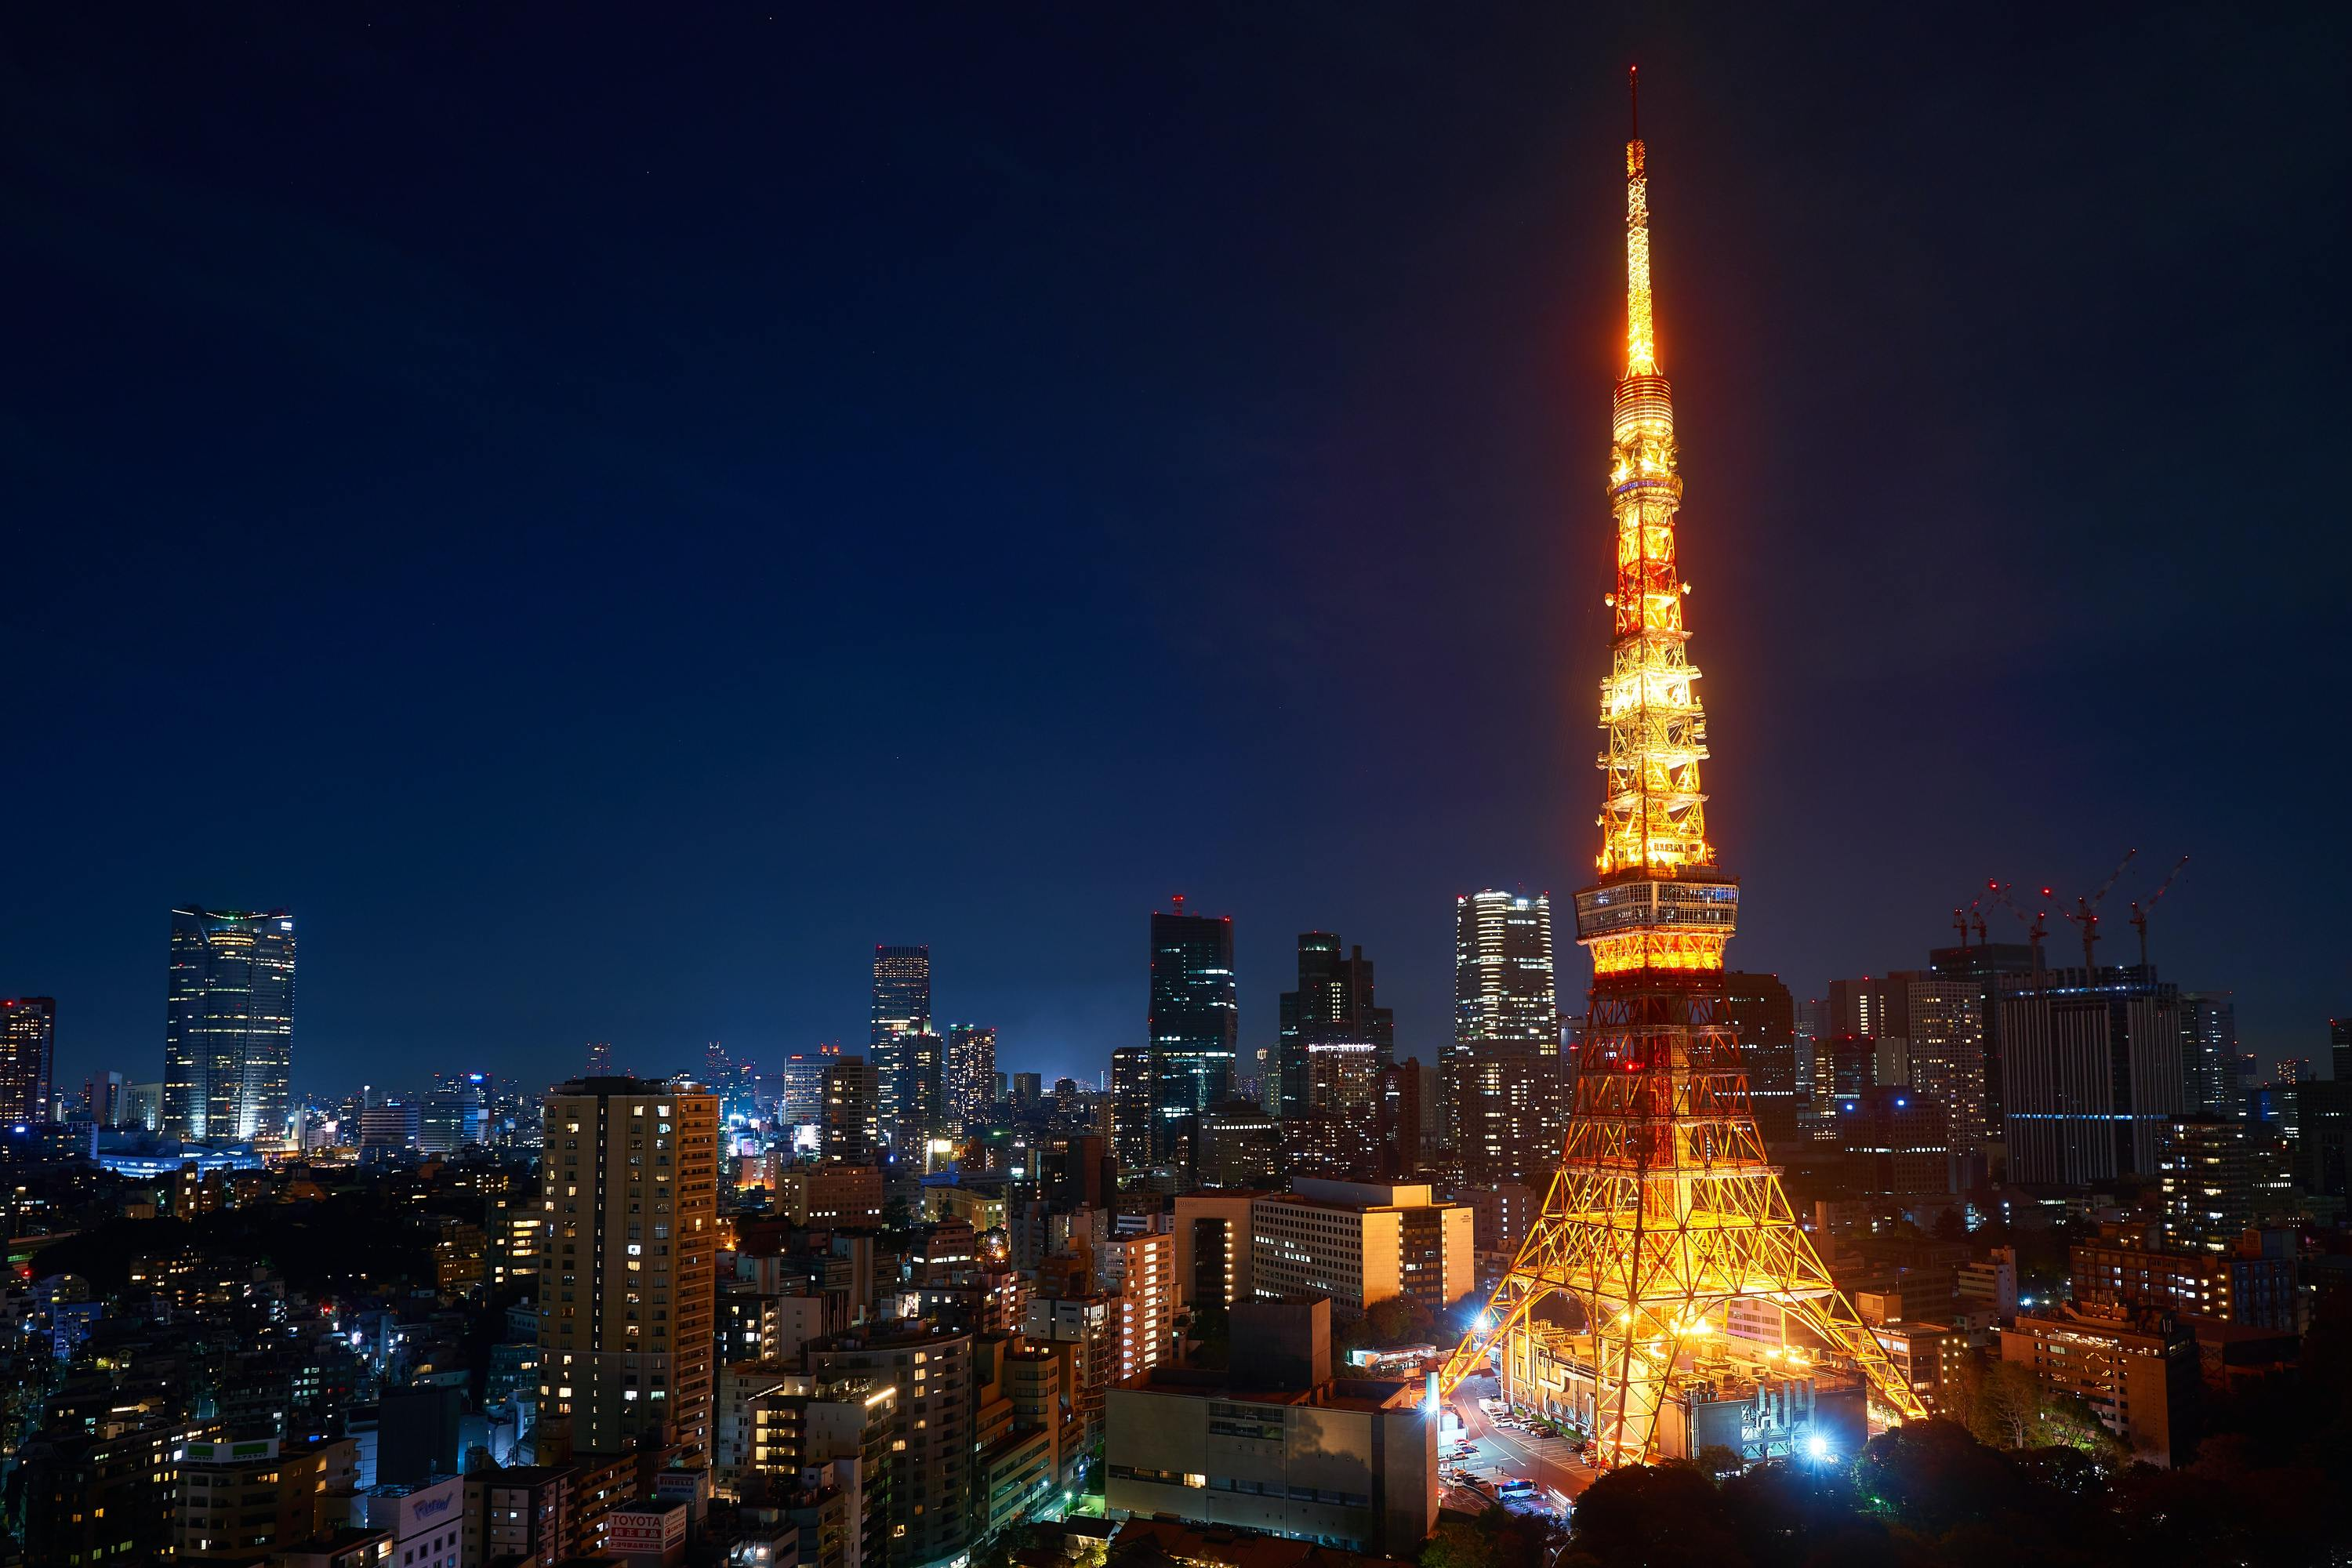 Tokyo Tower visitors are urged to take the stairs to reach the main observation deck